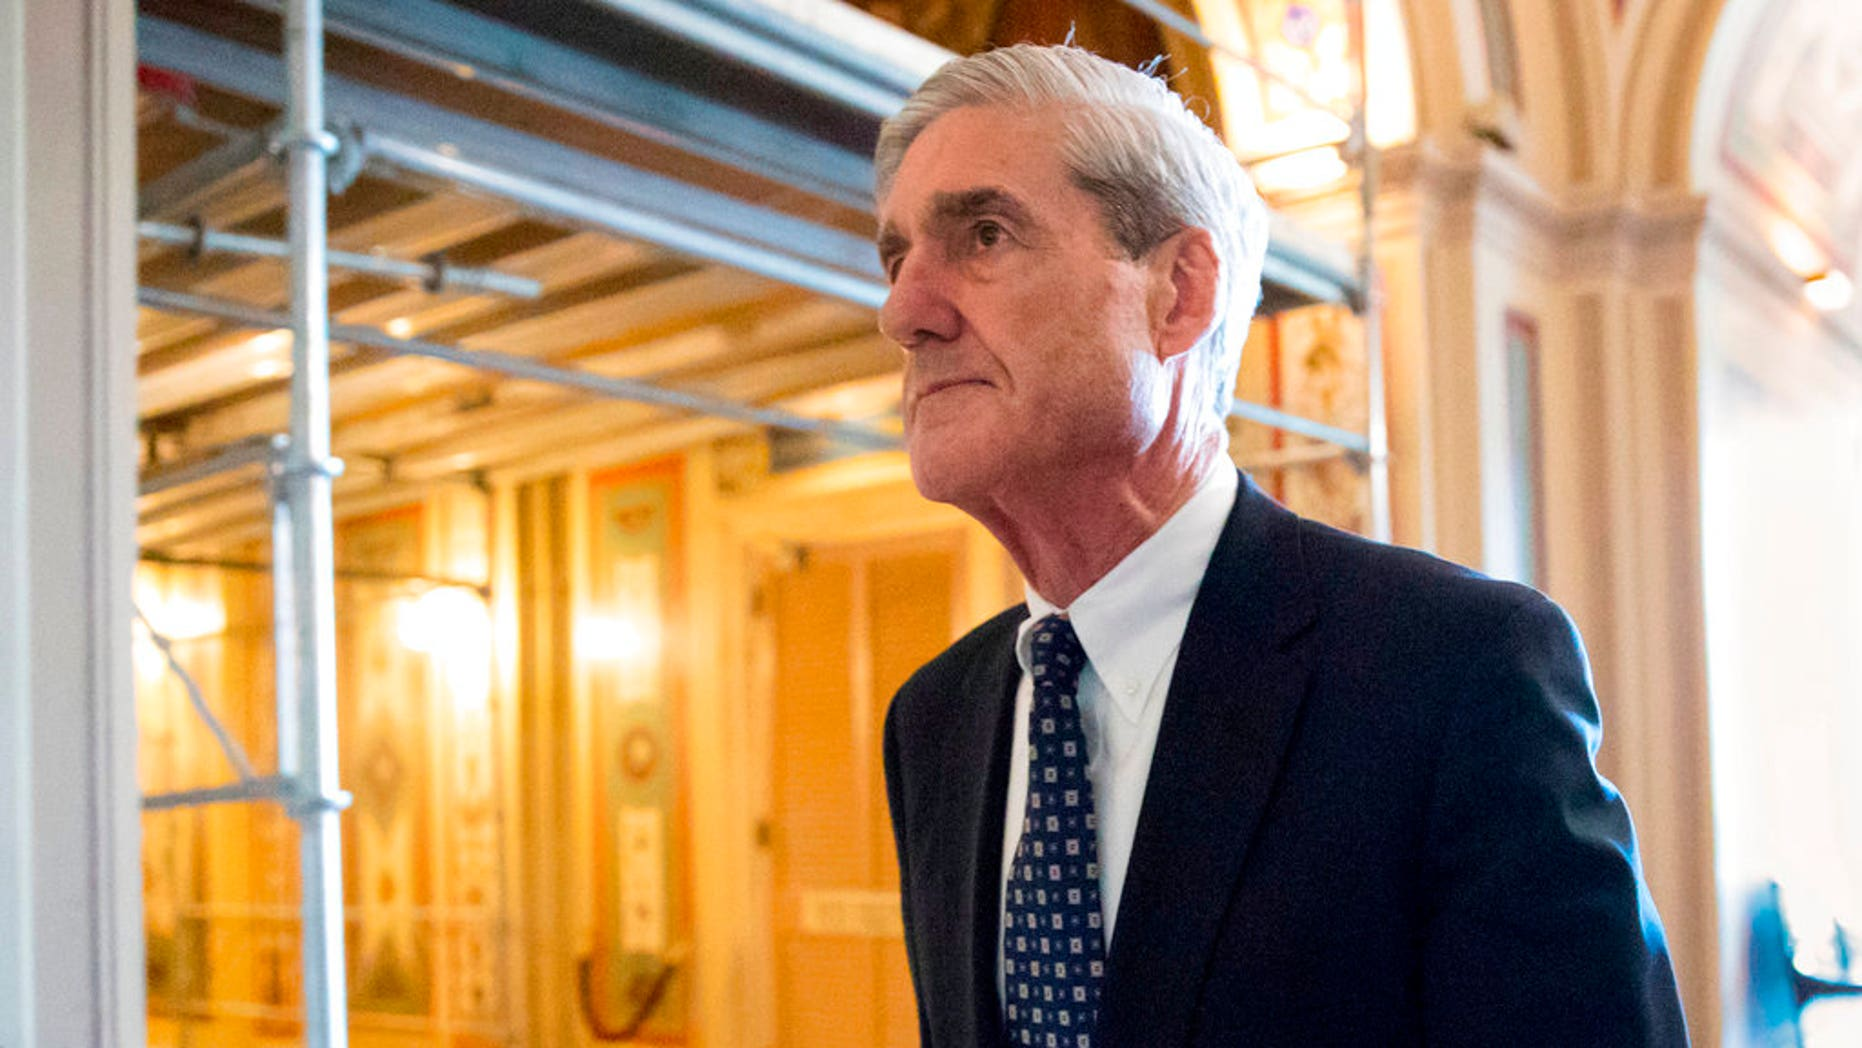 Robert Mueller leaving after a meeting on Capitol Hill in Washington, in June 2017.